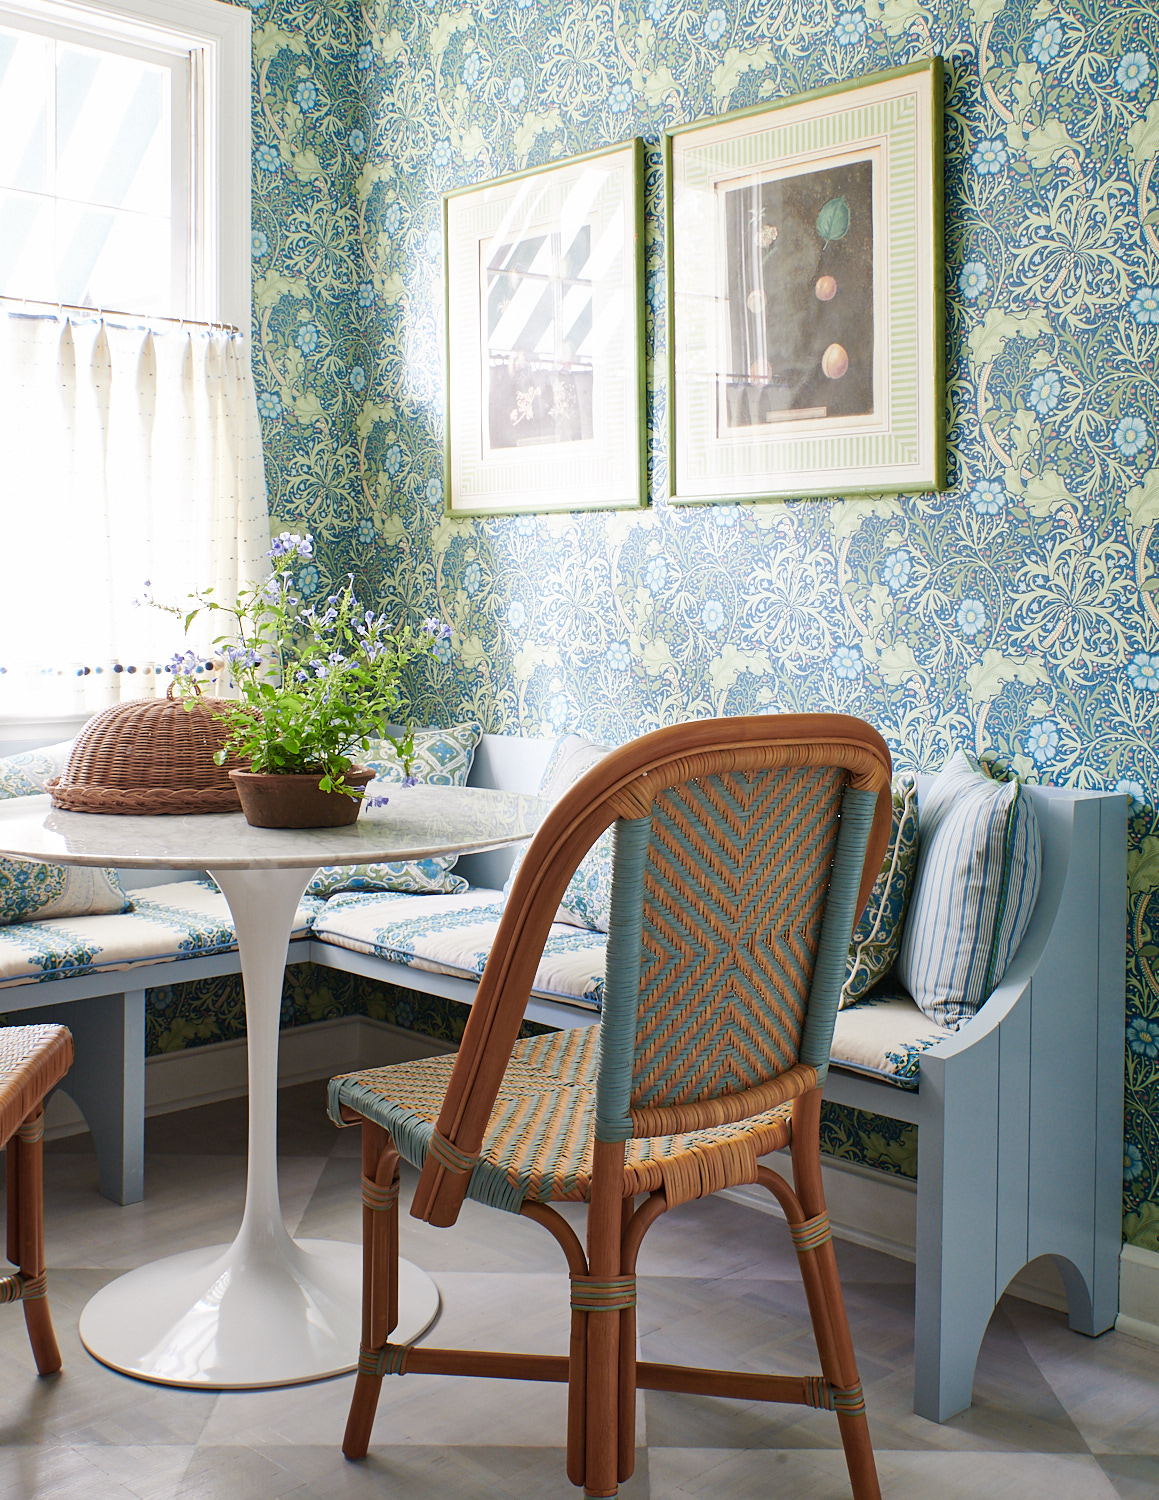 Breakfast nook bench cushions, various throw pillows, and kitchen drapery